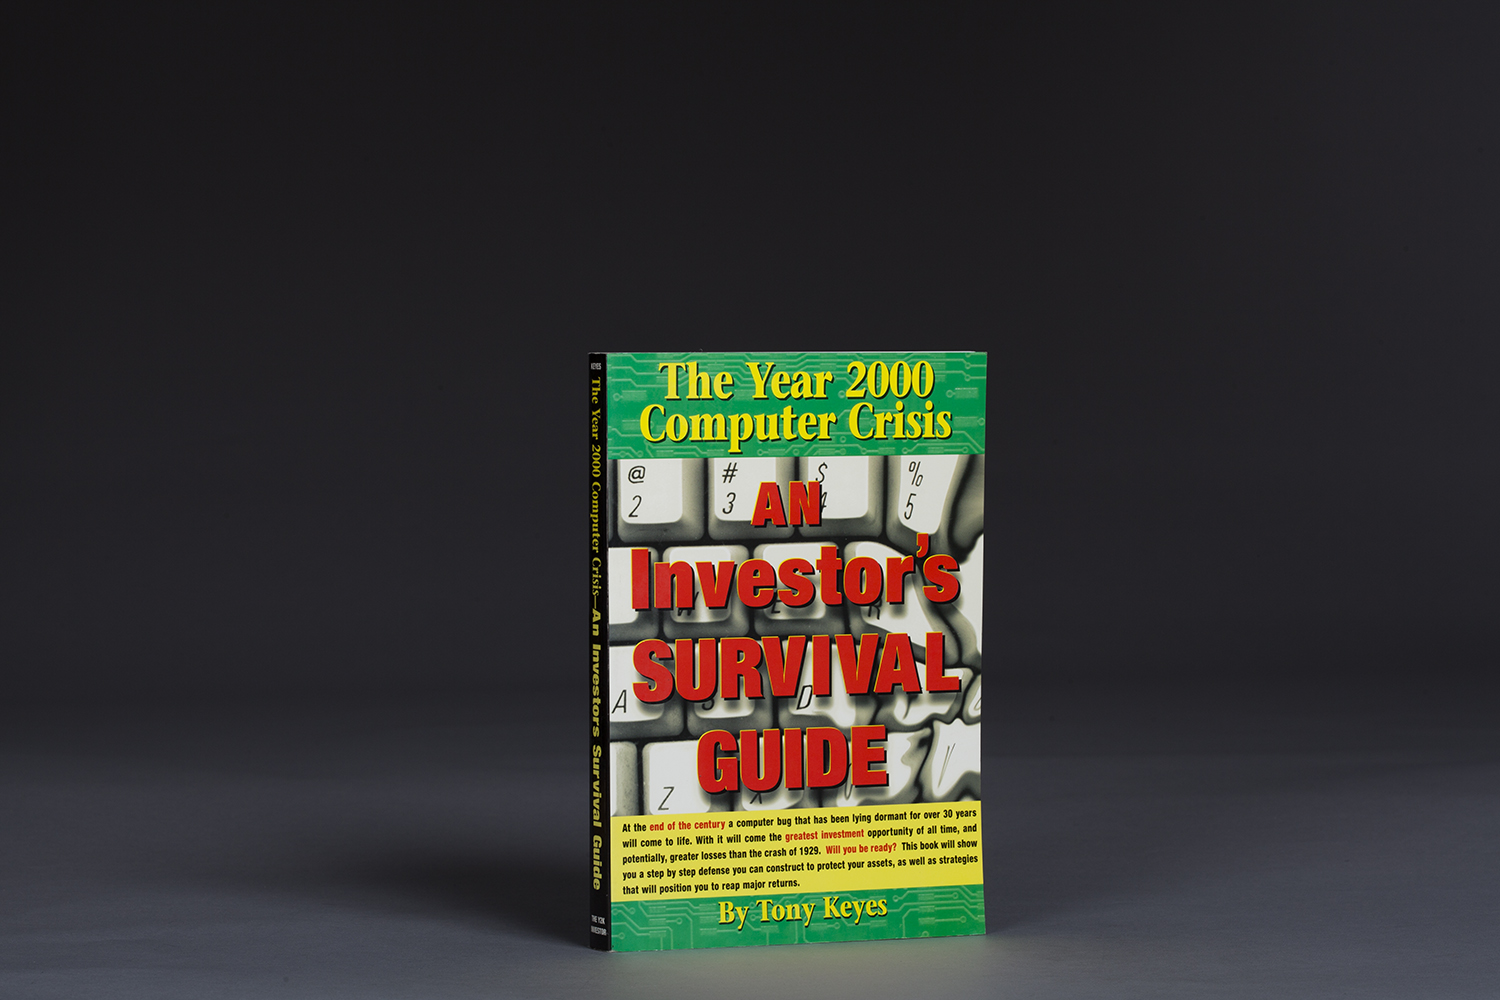 The Year 2000 Computer Crisis - An Investor's Survival Guide - 0220 Cover.jpg